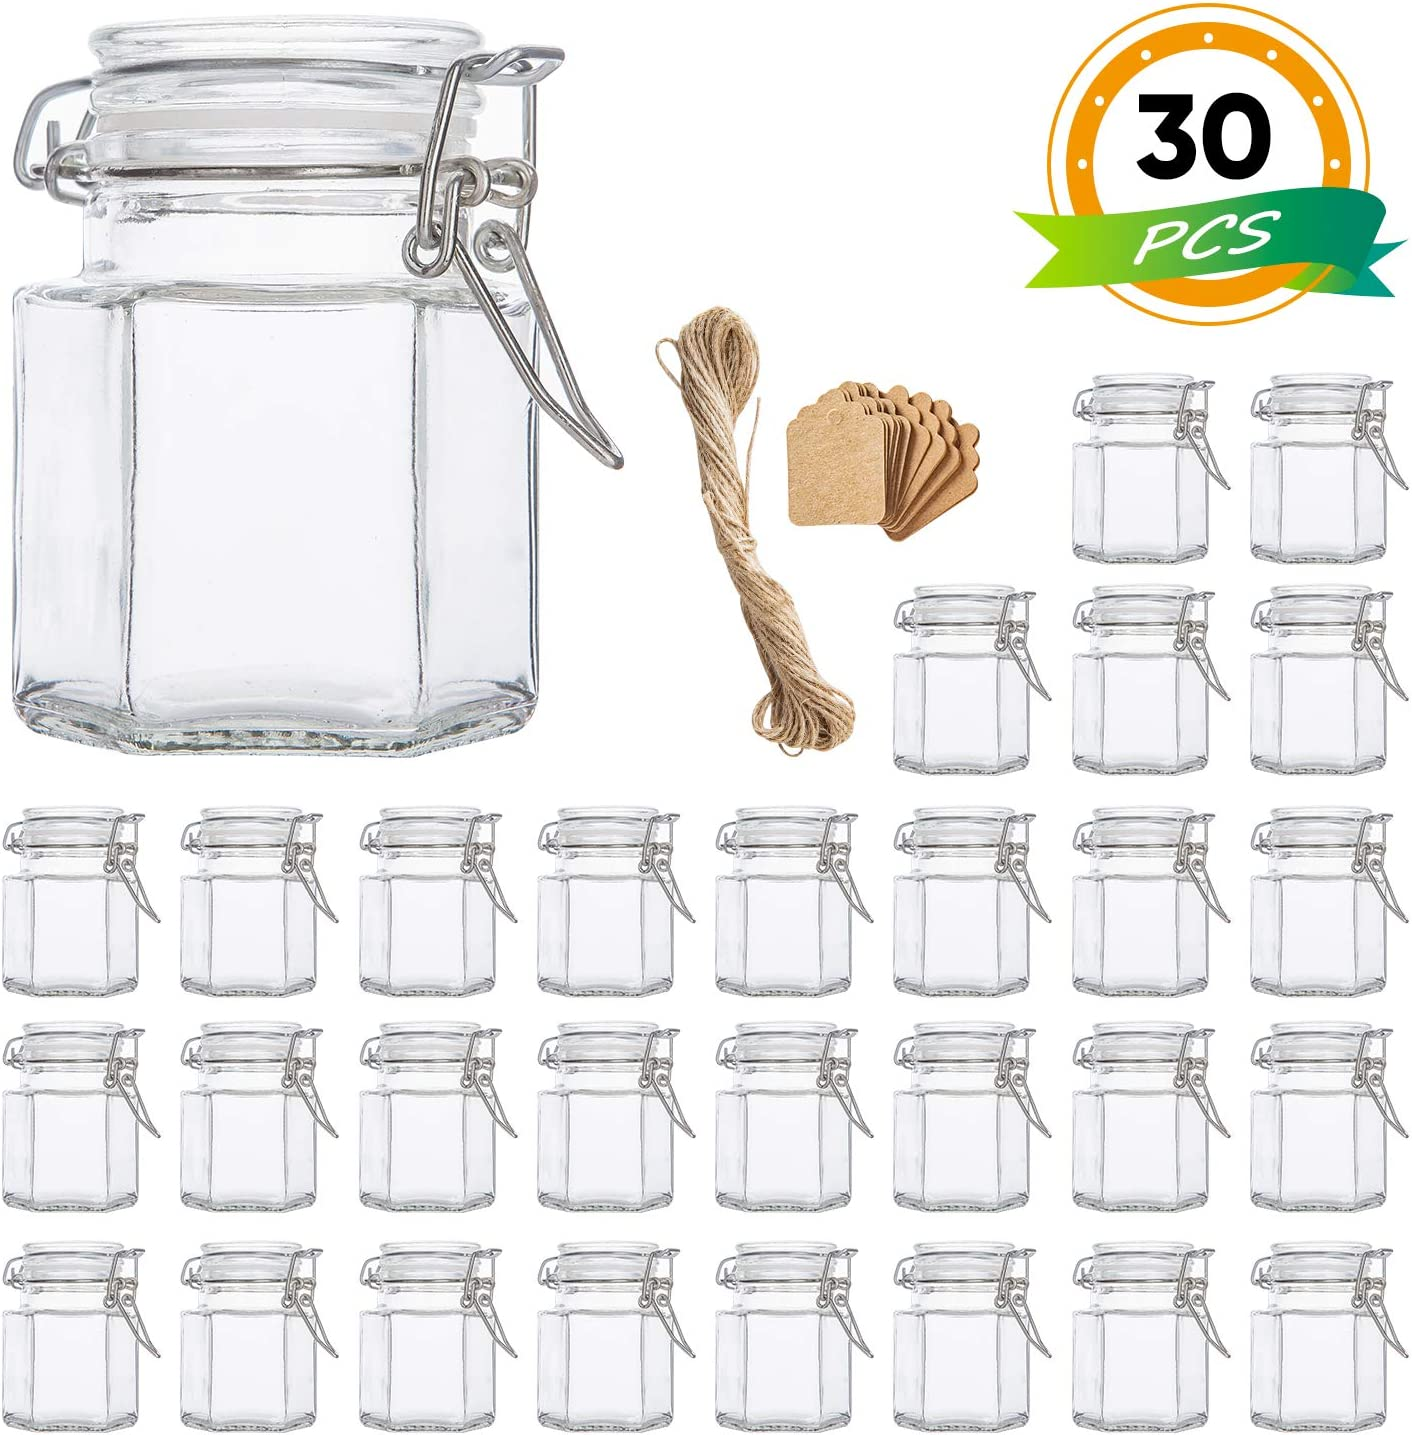 Spice Jars, Flrolove 30 Pack 3.5oz Hexagon Glass Jars with Leak Proof Rubber Gasket & Hinged Lid,Small Glass Containers with Airtight Lids for Home, Party Favors